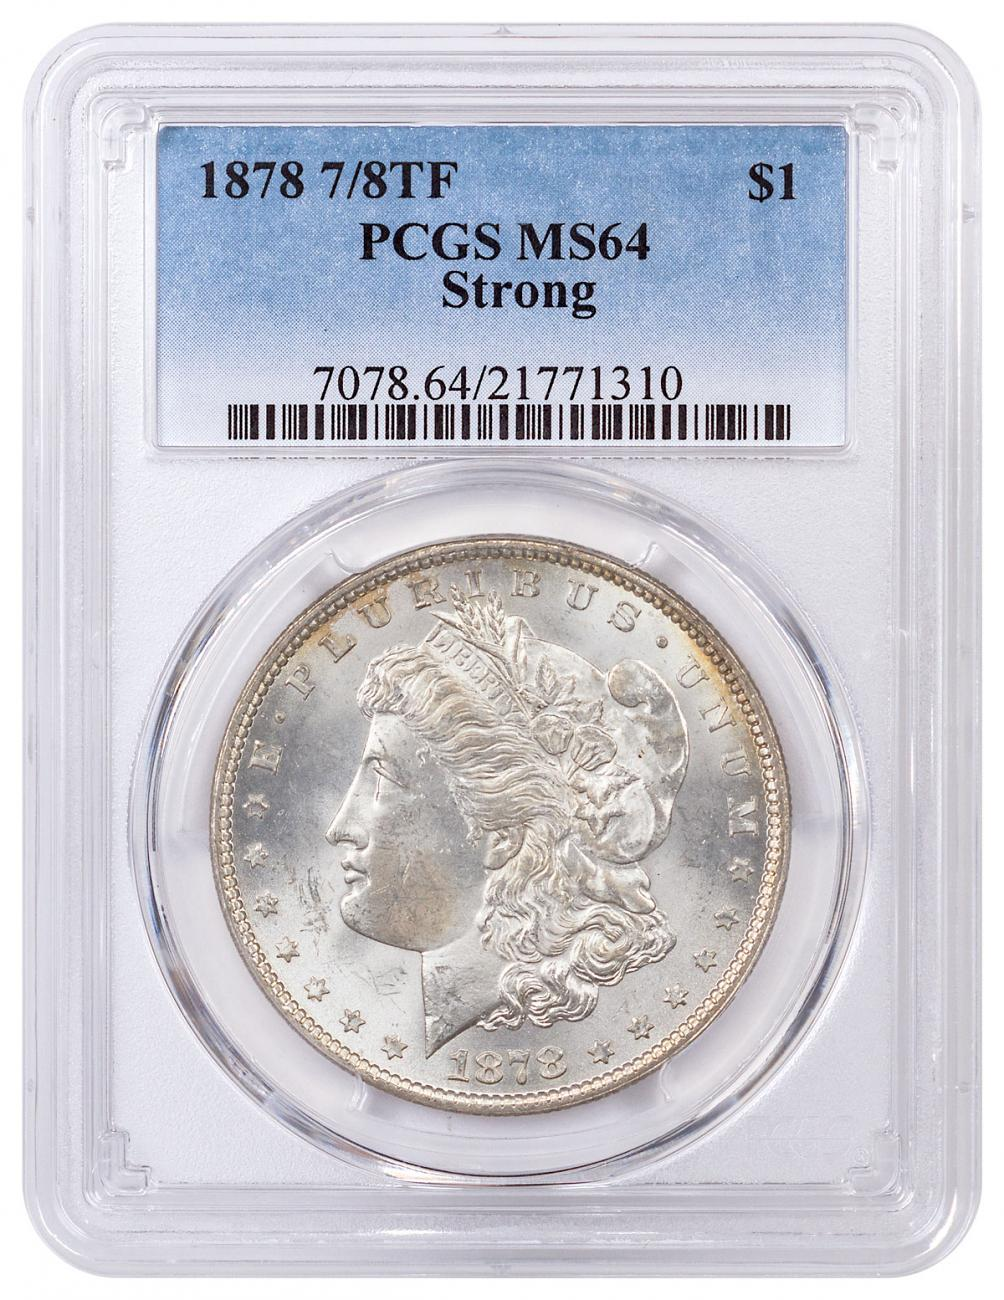 1878 Morgan Silver Dollar (7/8TF Strong) PCGS MS64